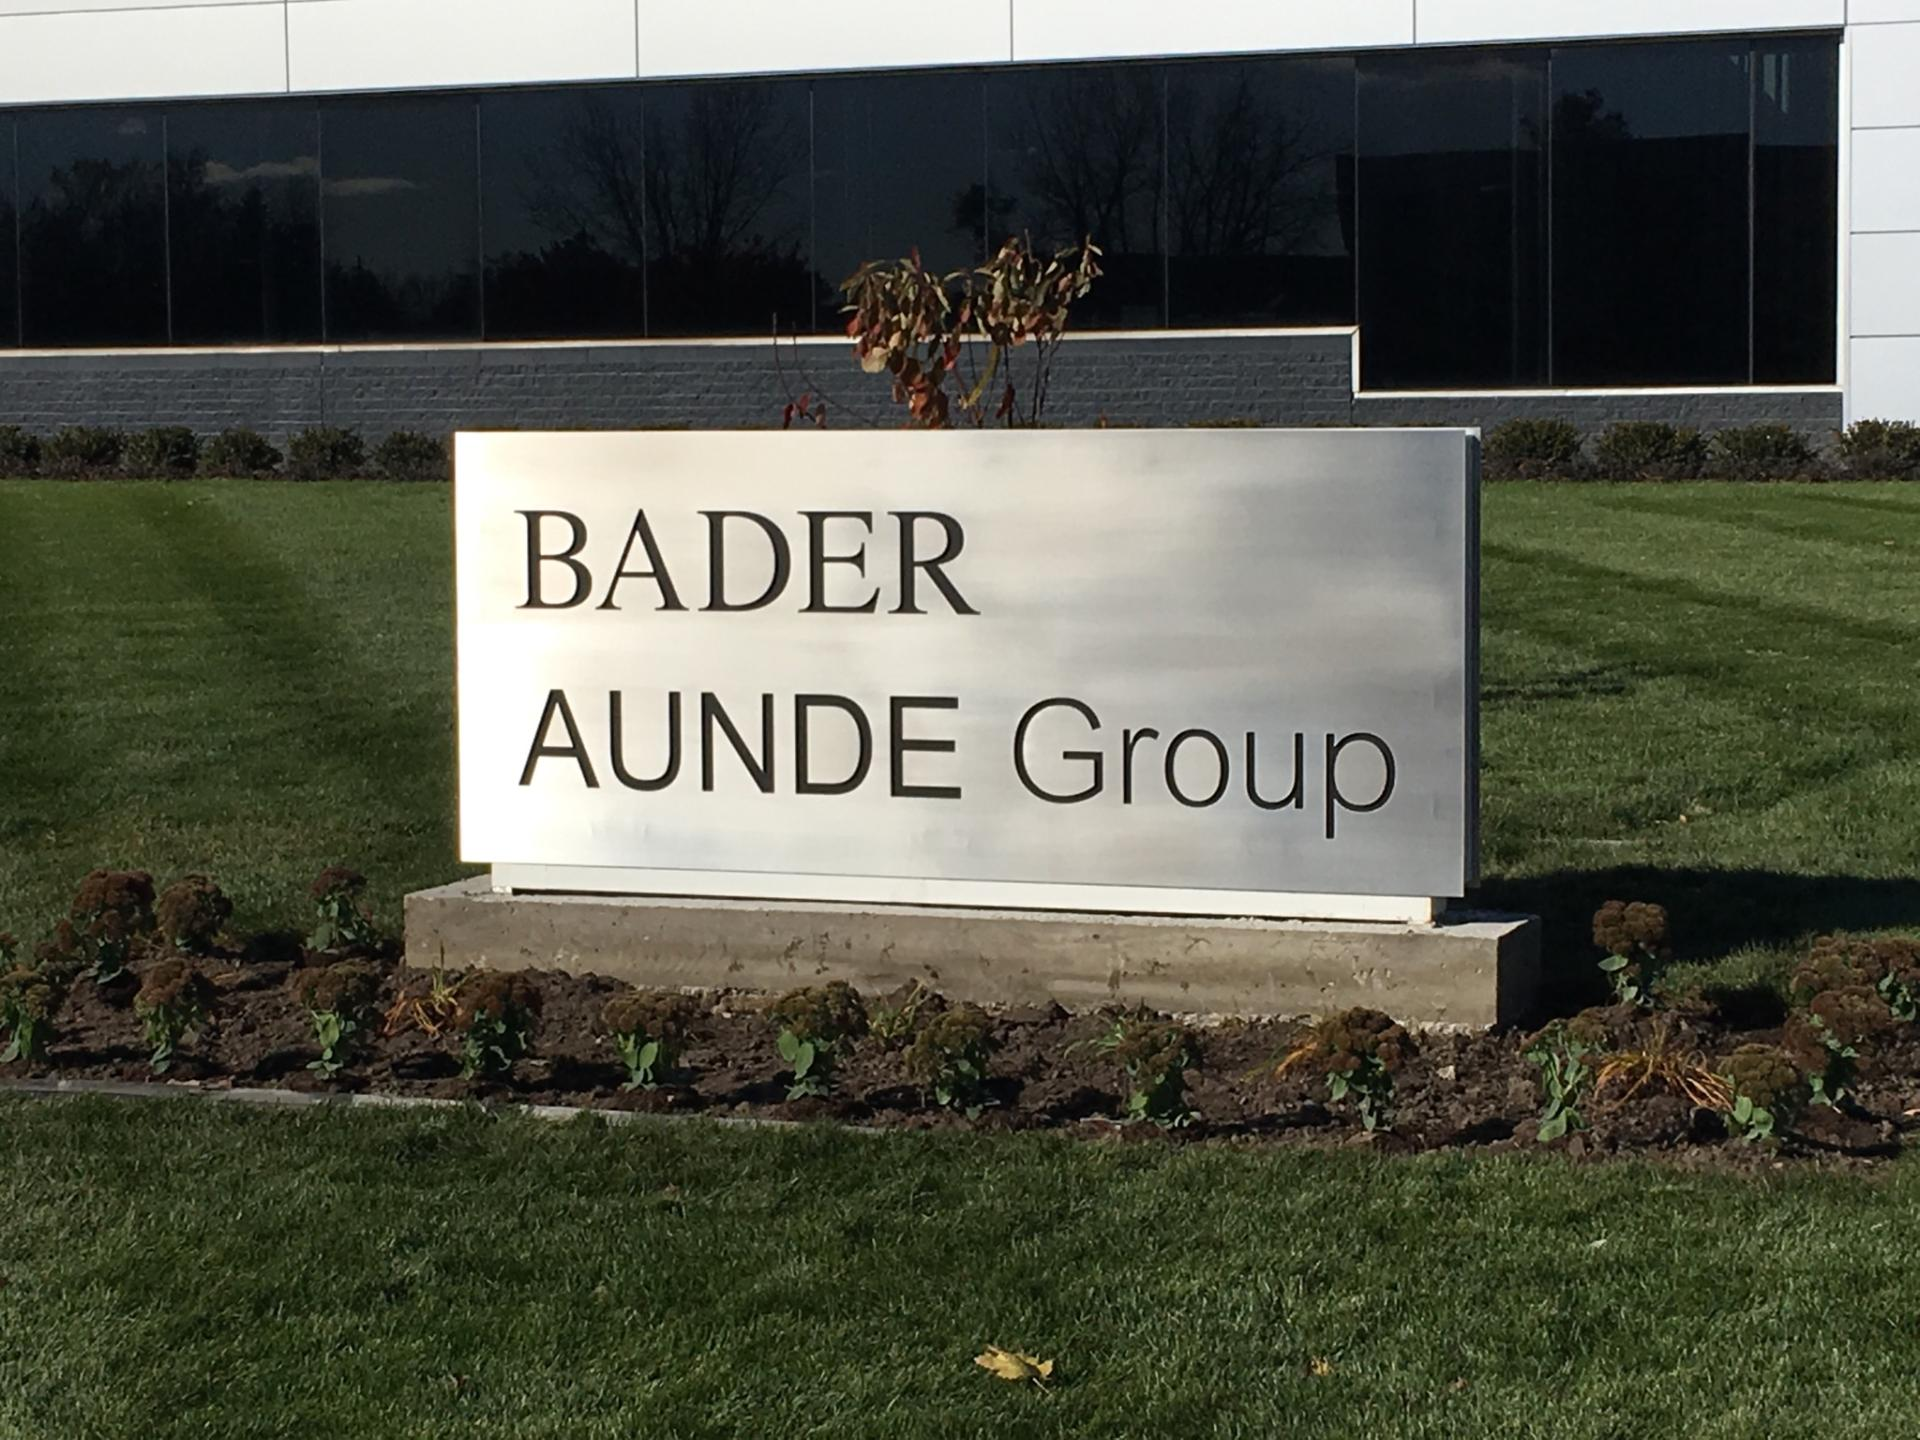 Bader Aunde Group